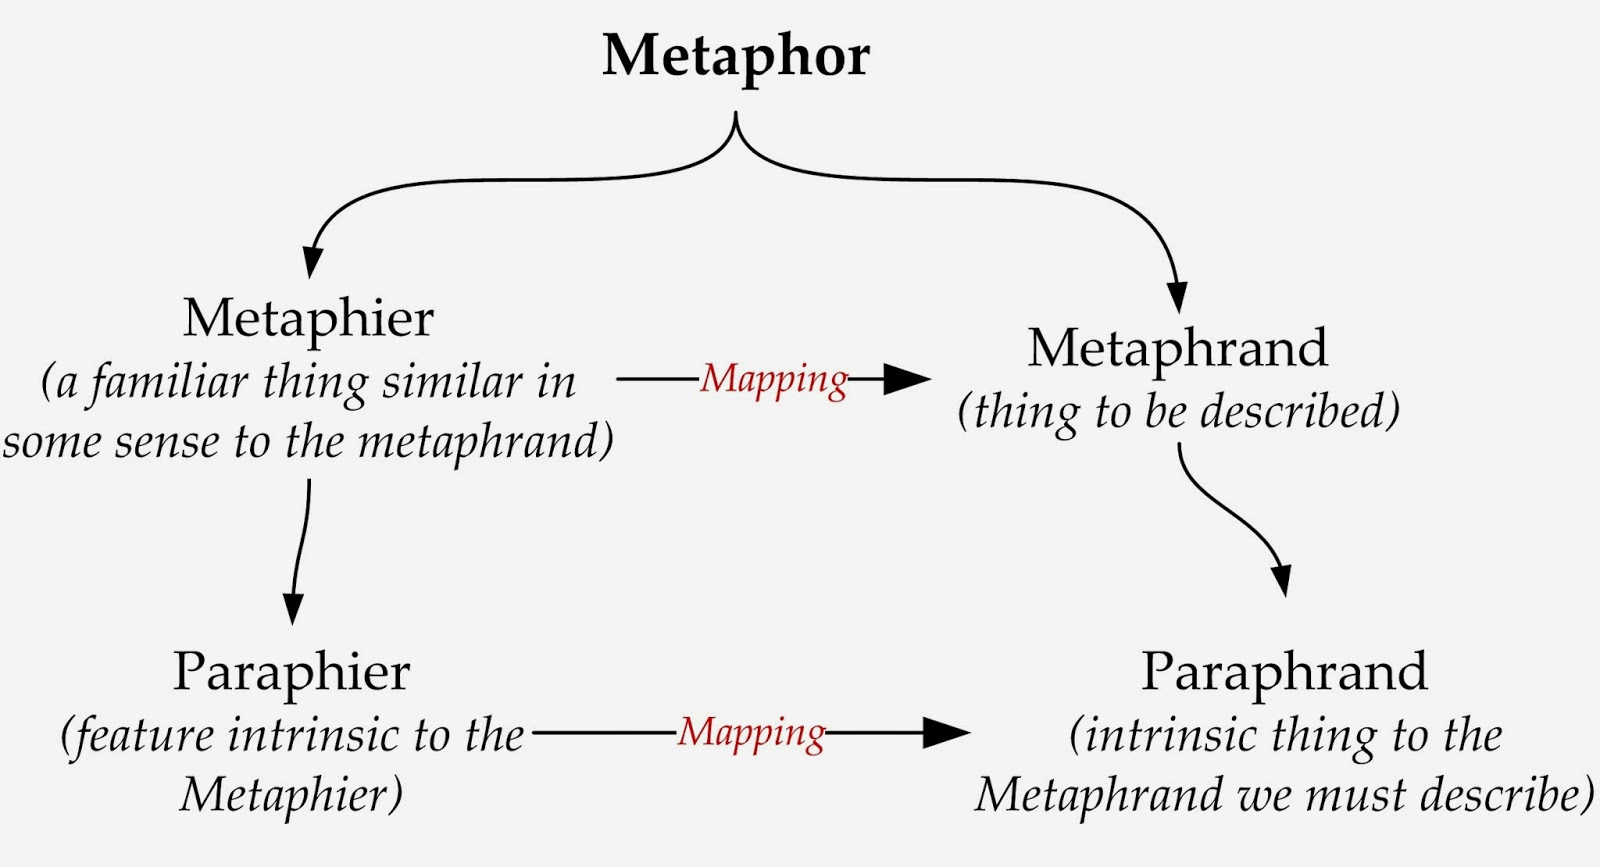 Enthumematon The Structure Of Analogy Through Metaphors